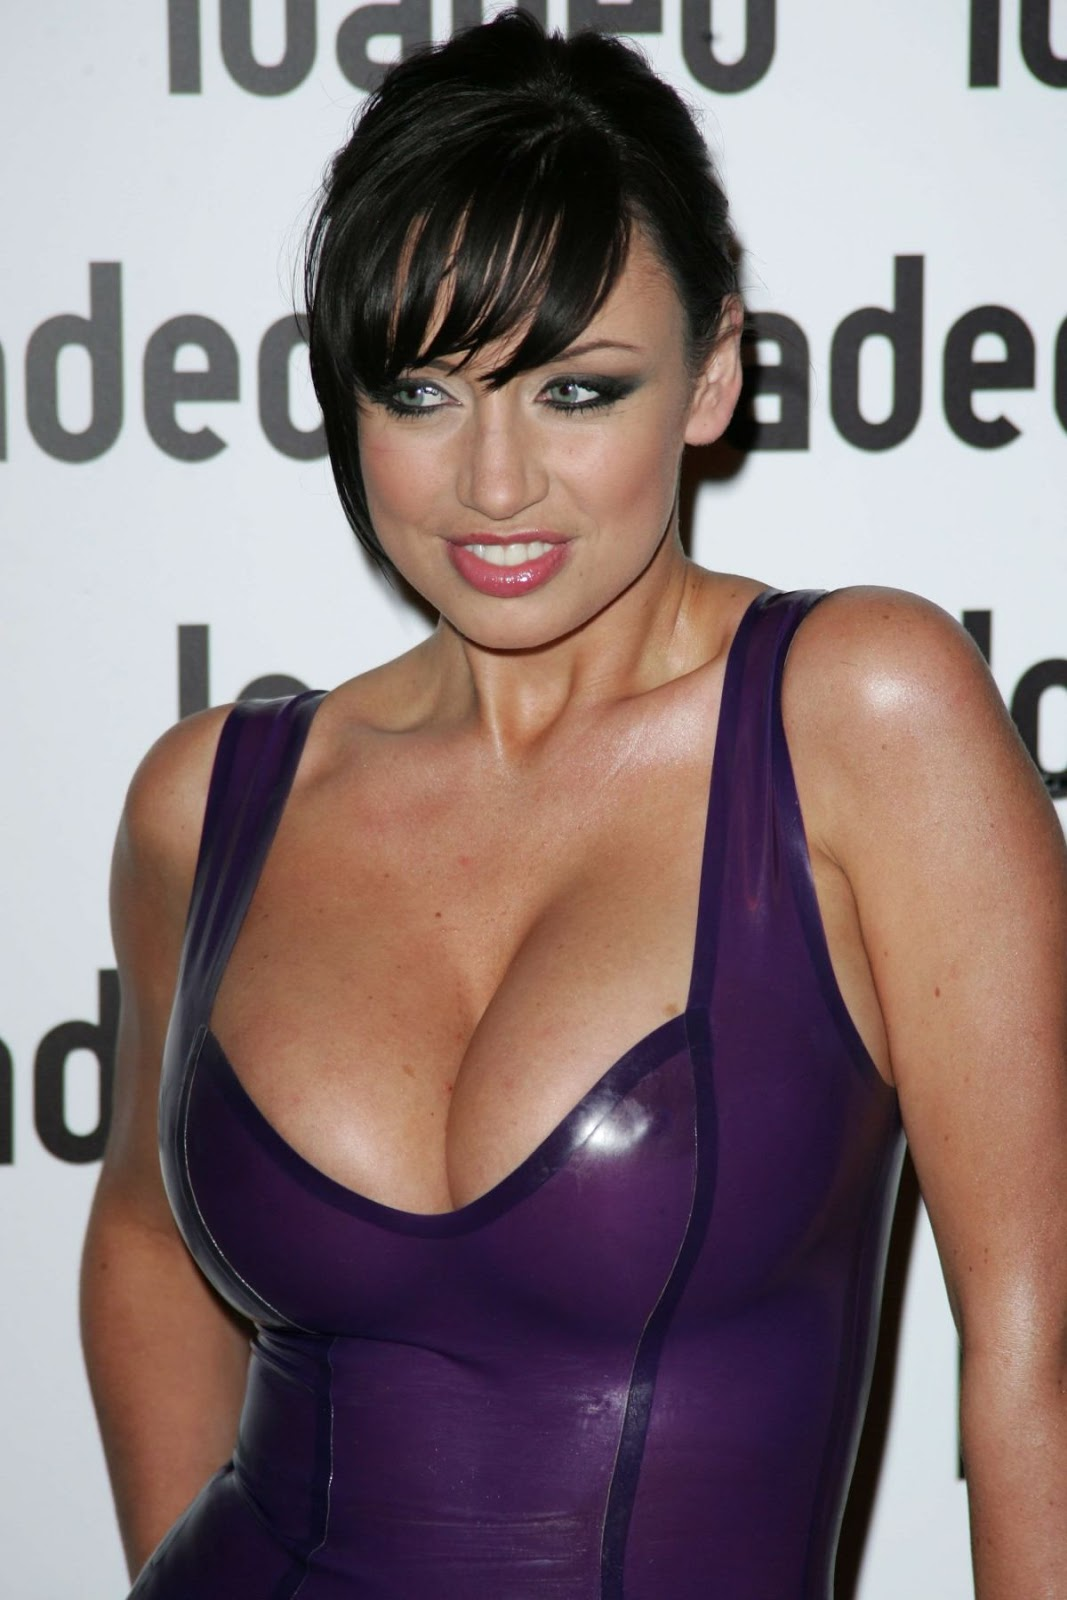 Sophie howard nude pics from tumblr